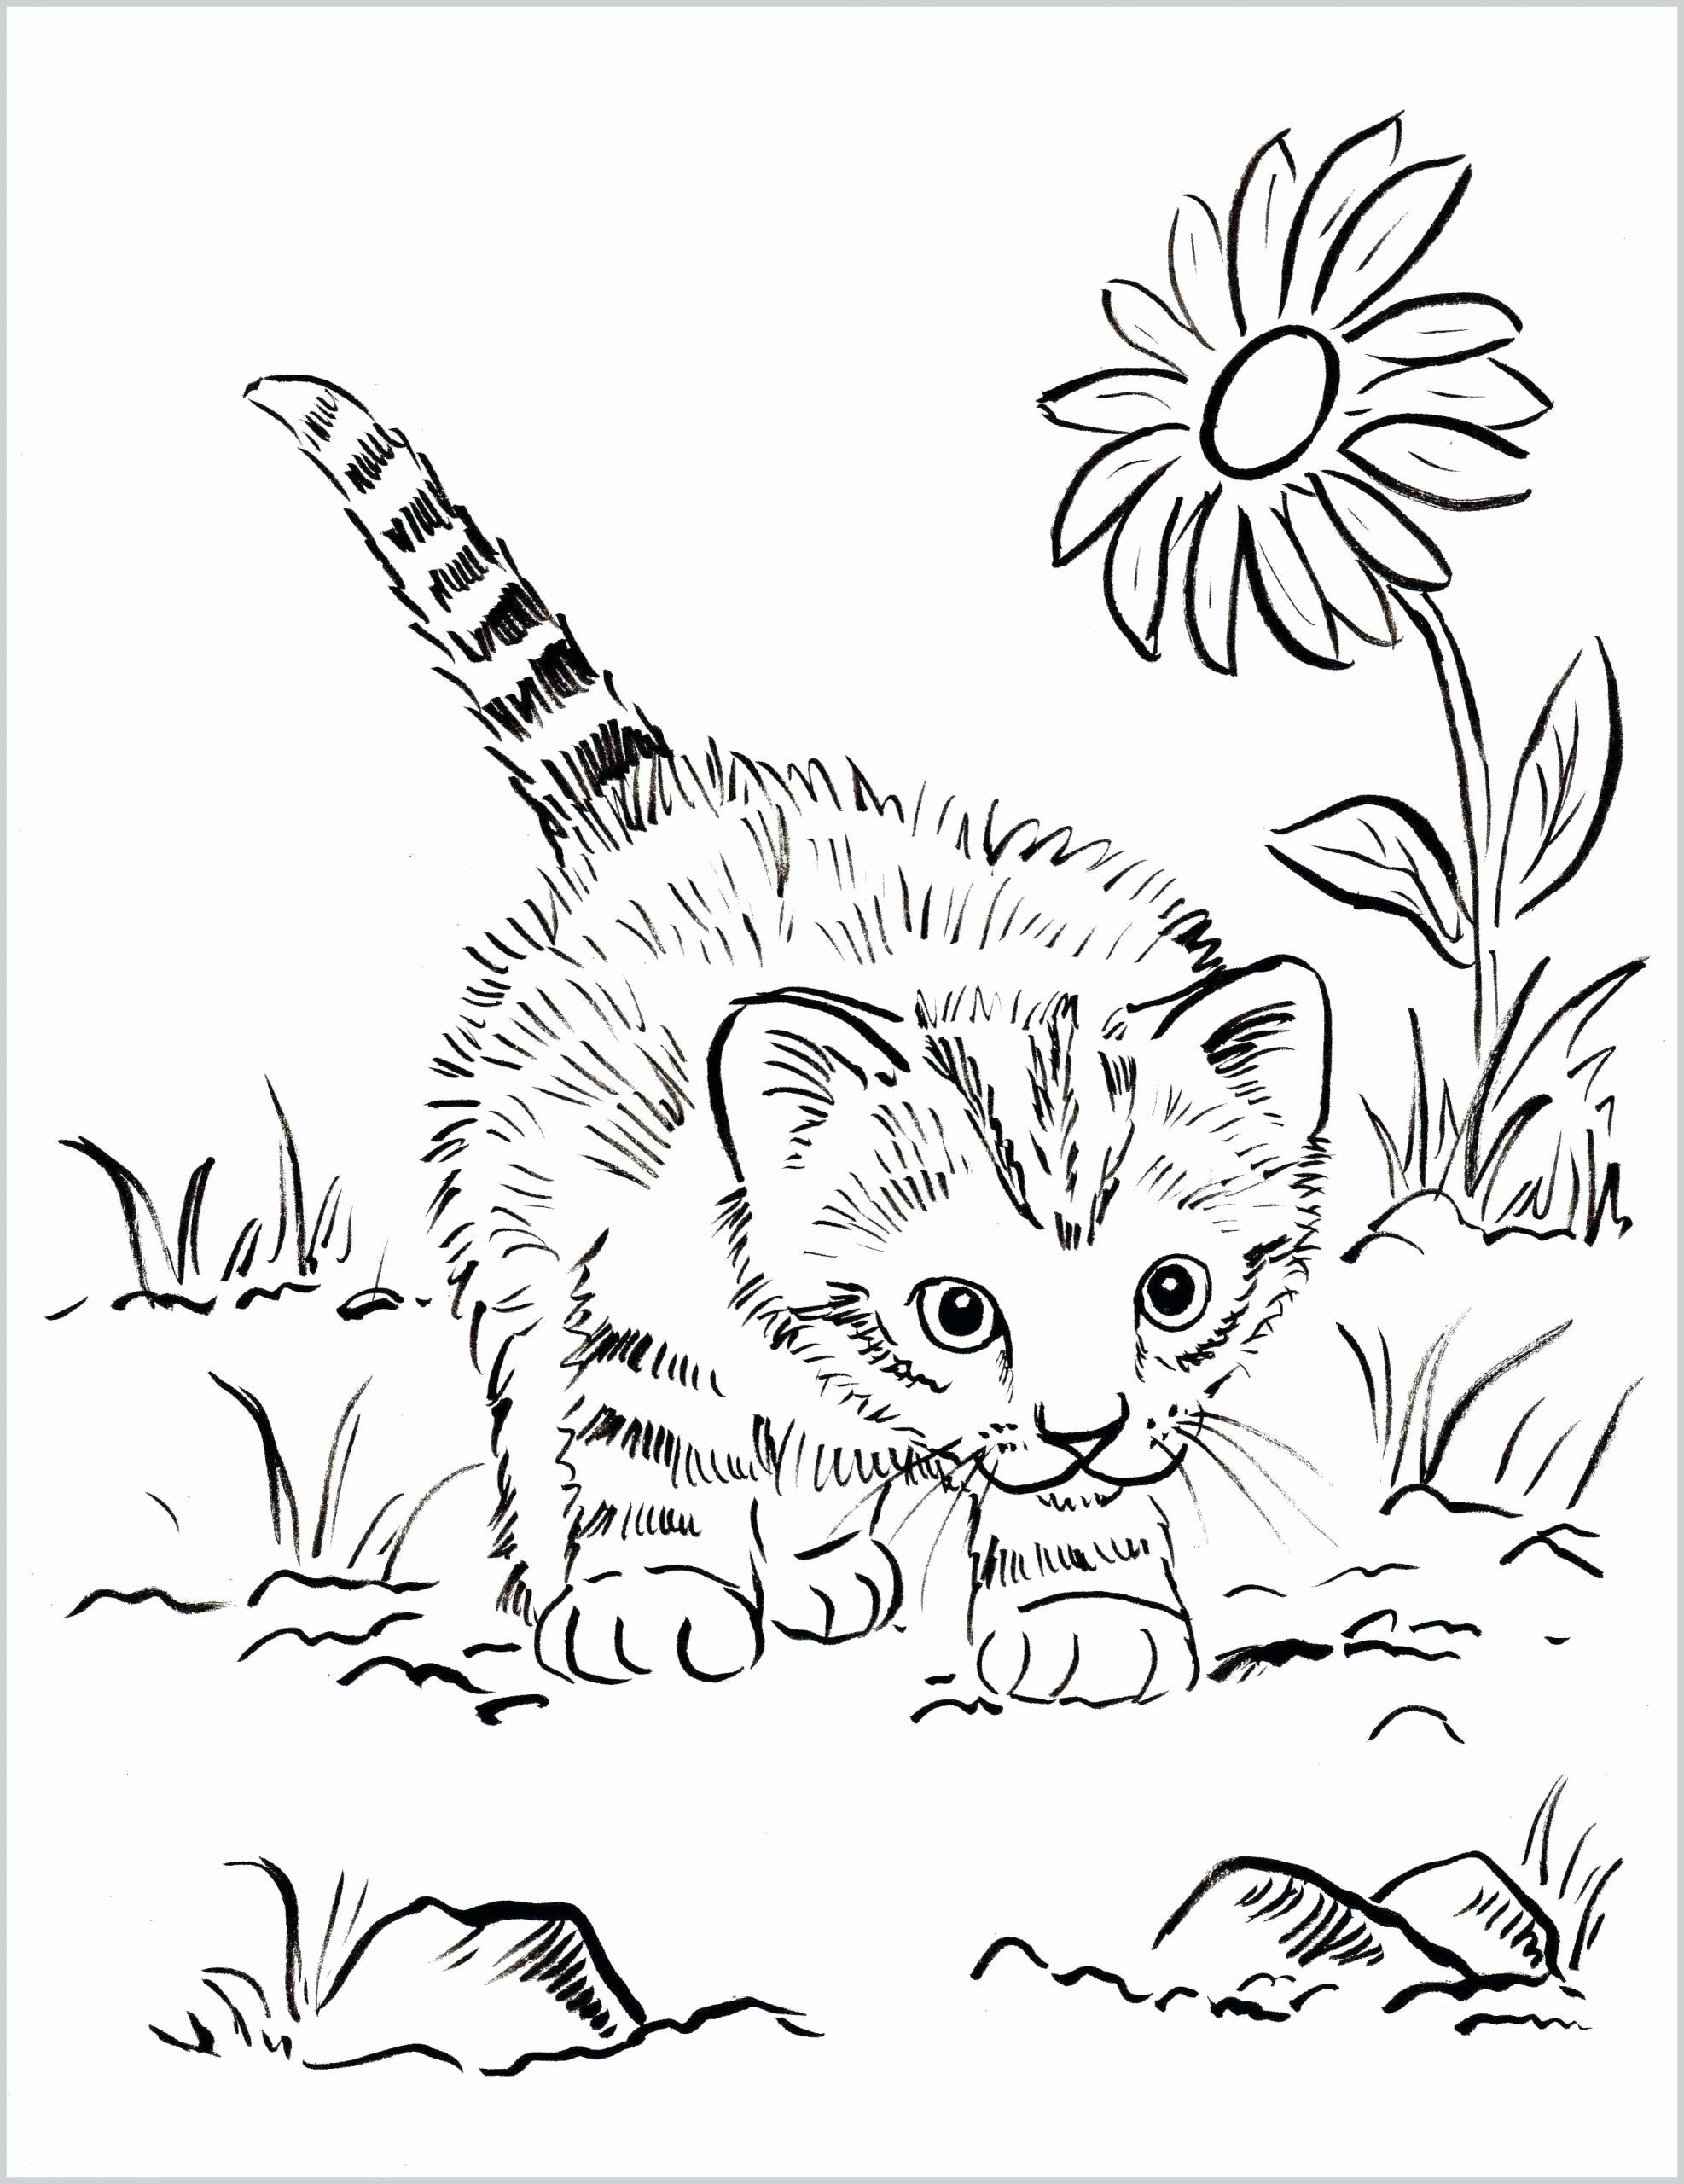 Coloring Sheets Of Cats Best Of Coloring Book Coloring Book Free Cat And Kitten Pages To Cat Coloring Book Kittens Coloring Puppy Coloring Pages